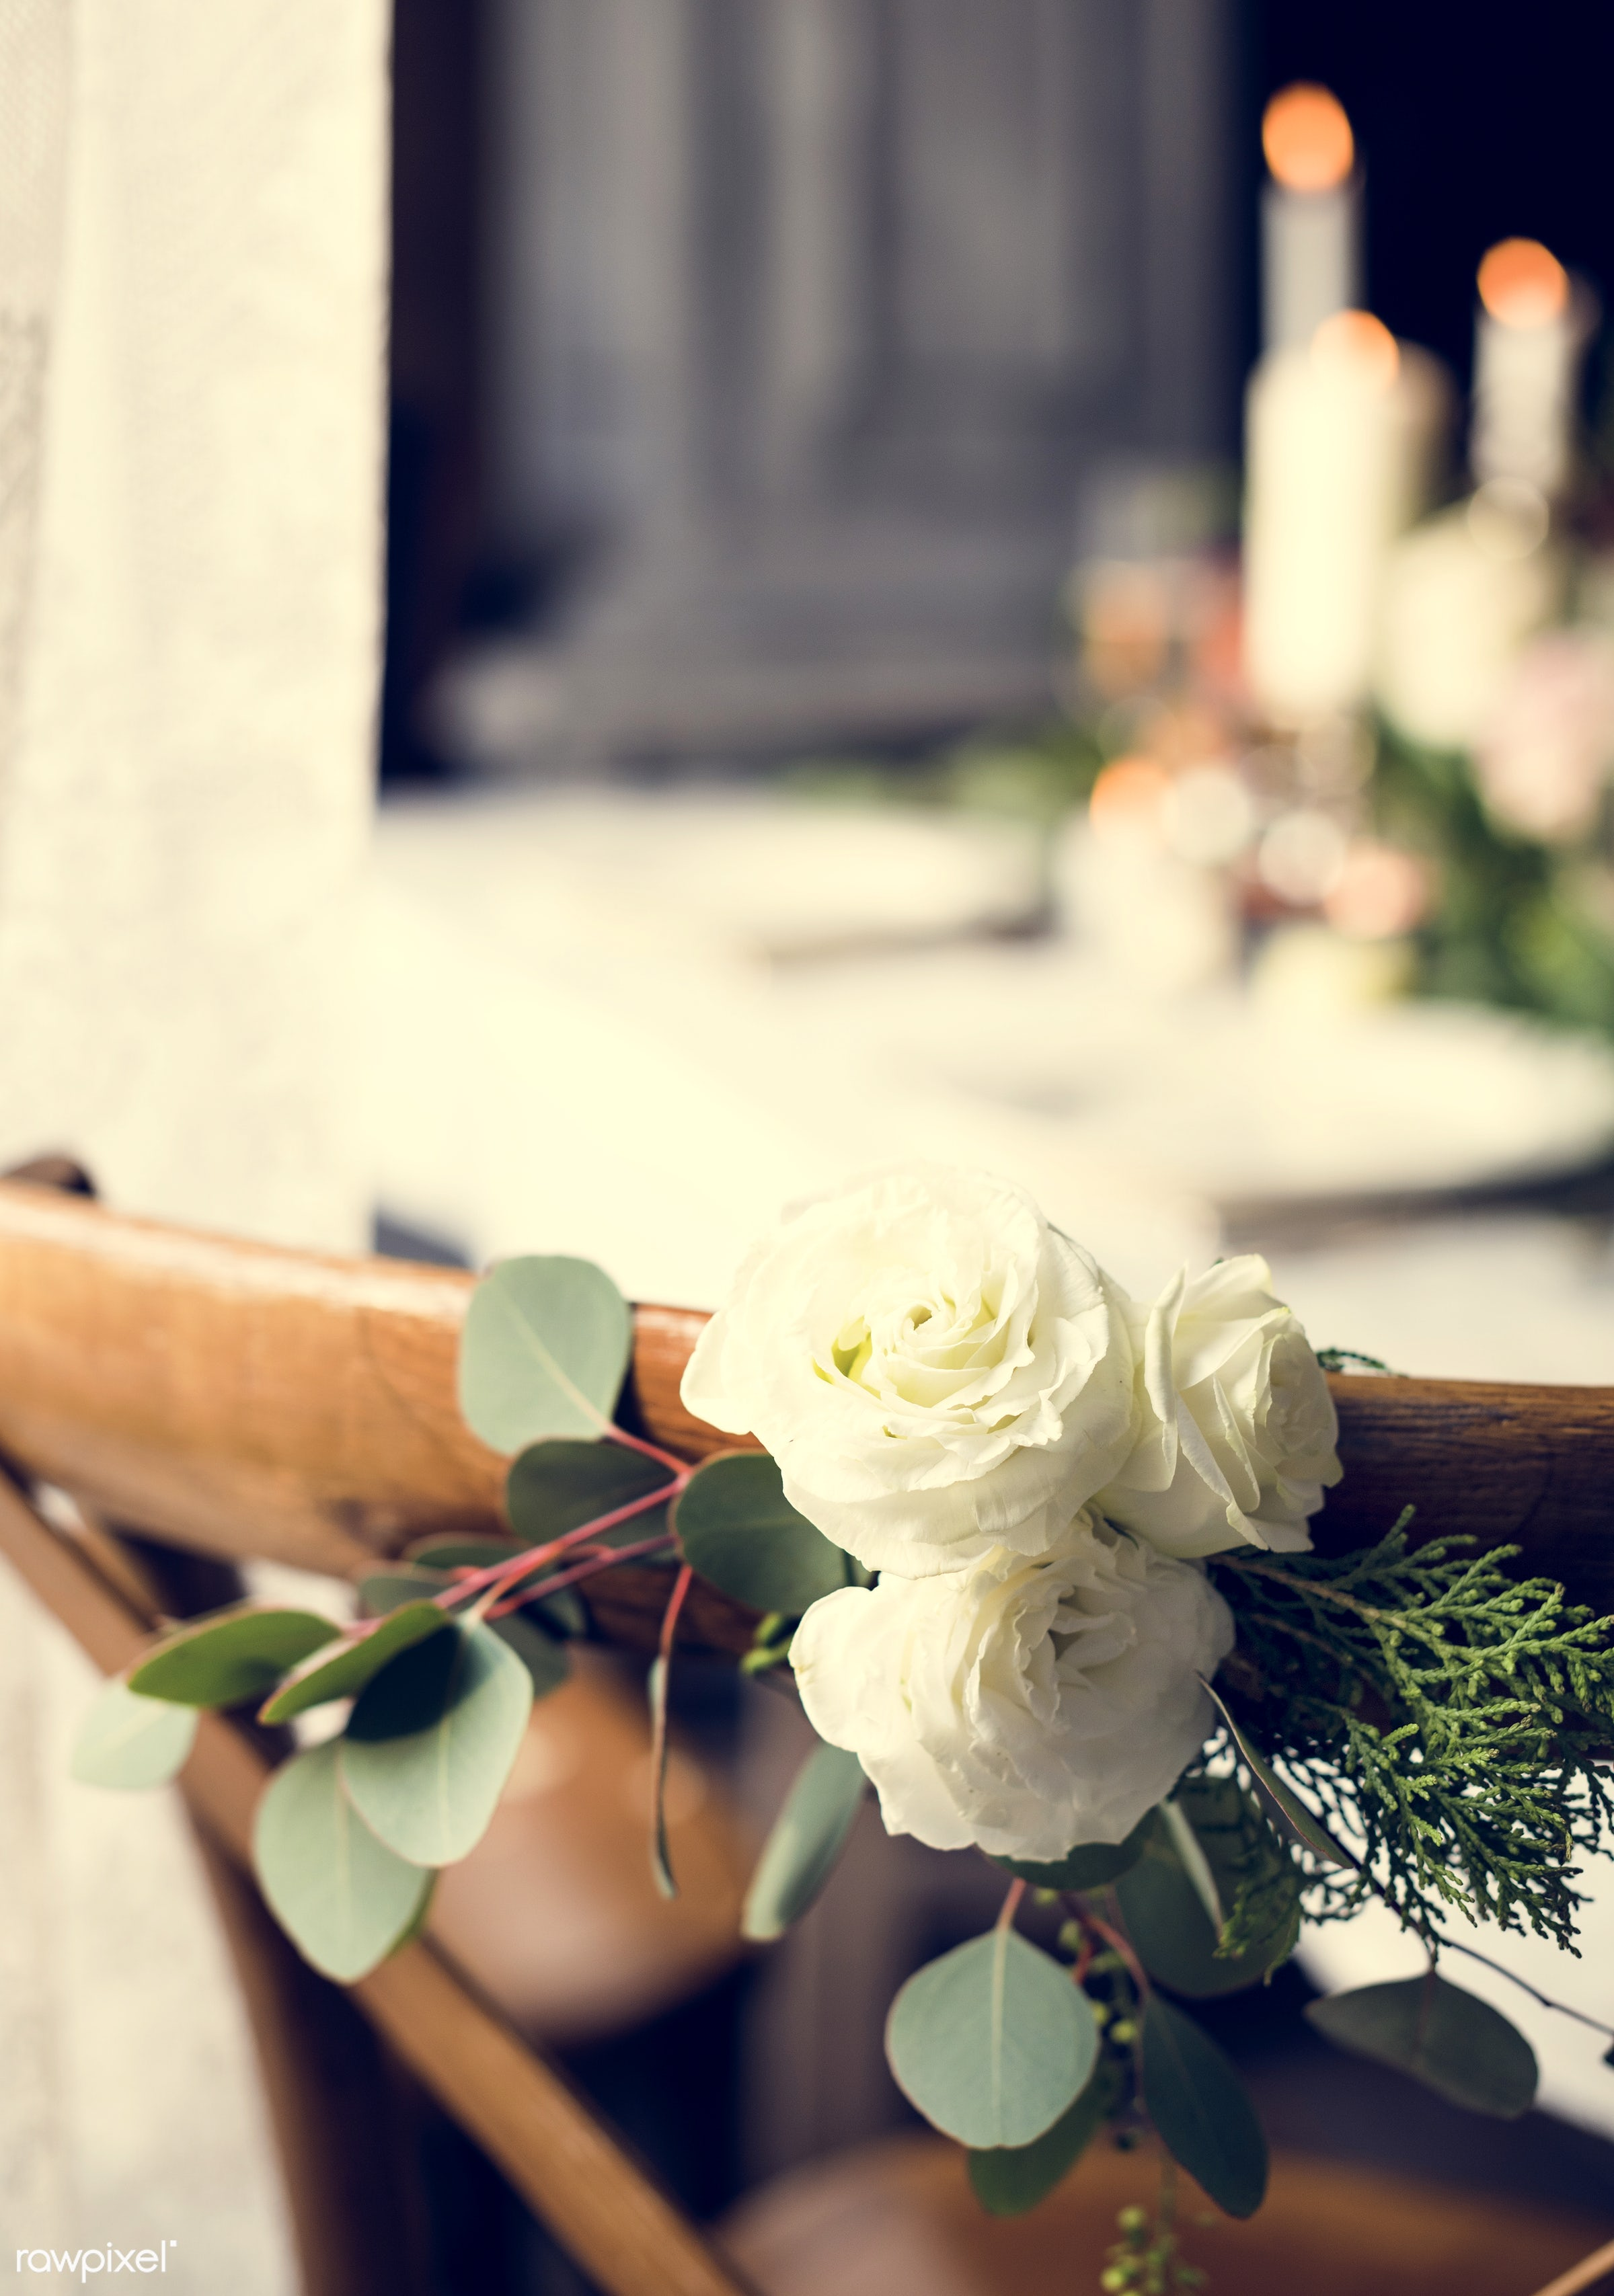 expression, nobody, wrapped, simple, leaf, leaves, decor, white rose, fresh, seat, banquet, pine, flowers, celebrate, flower...